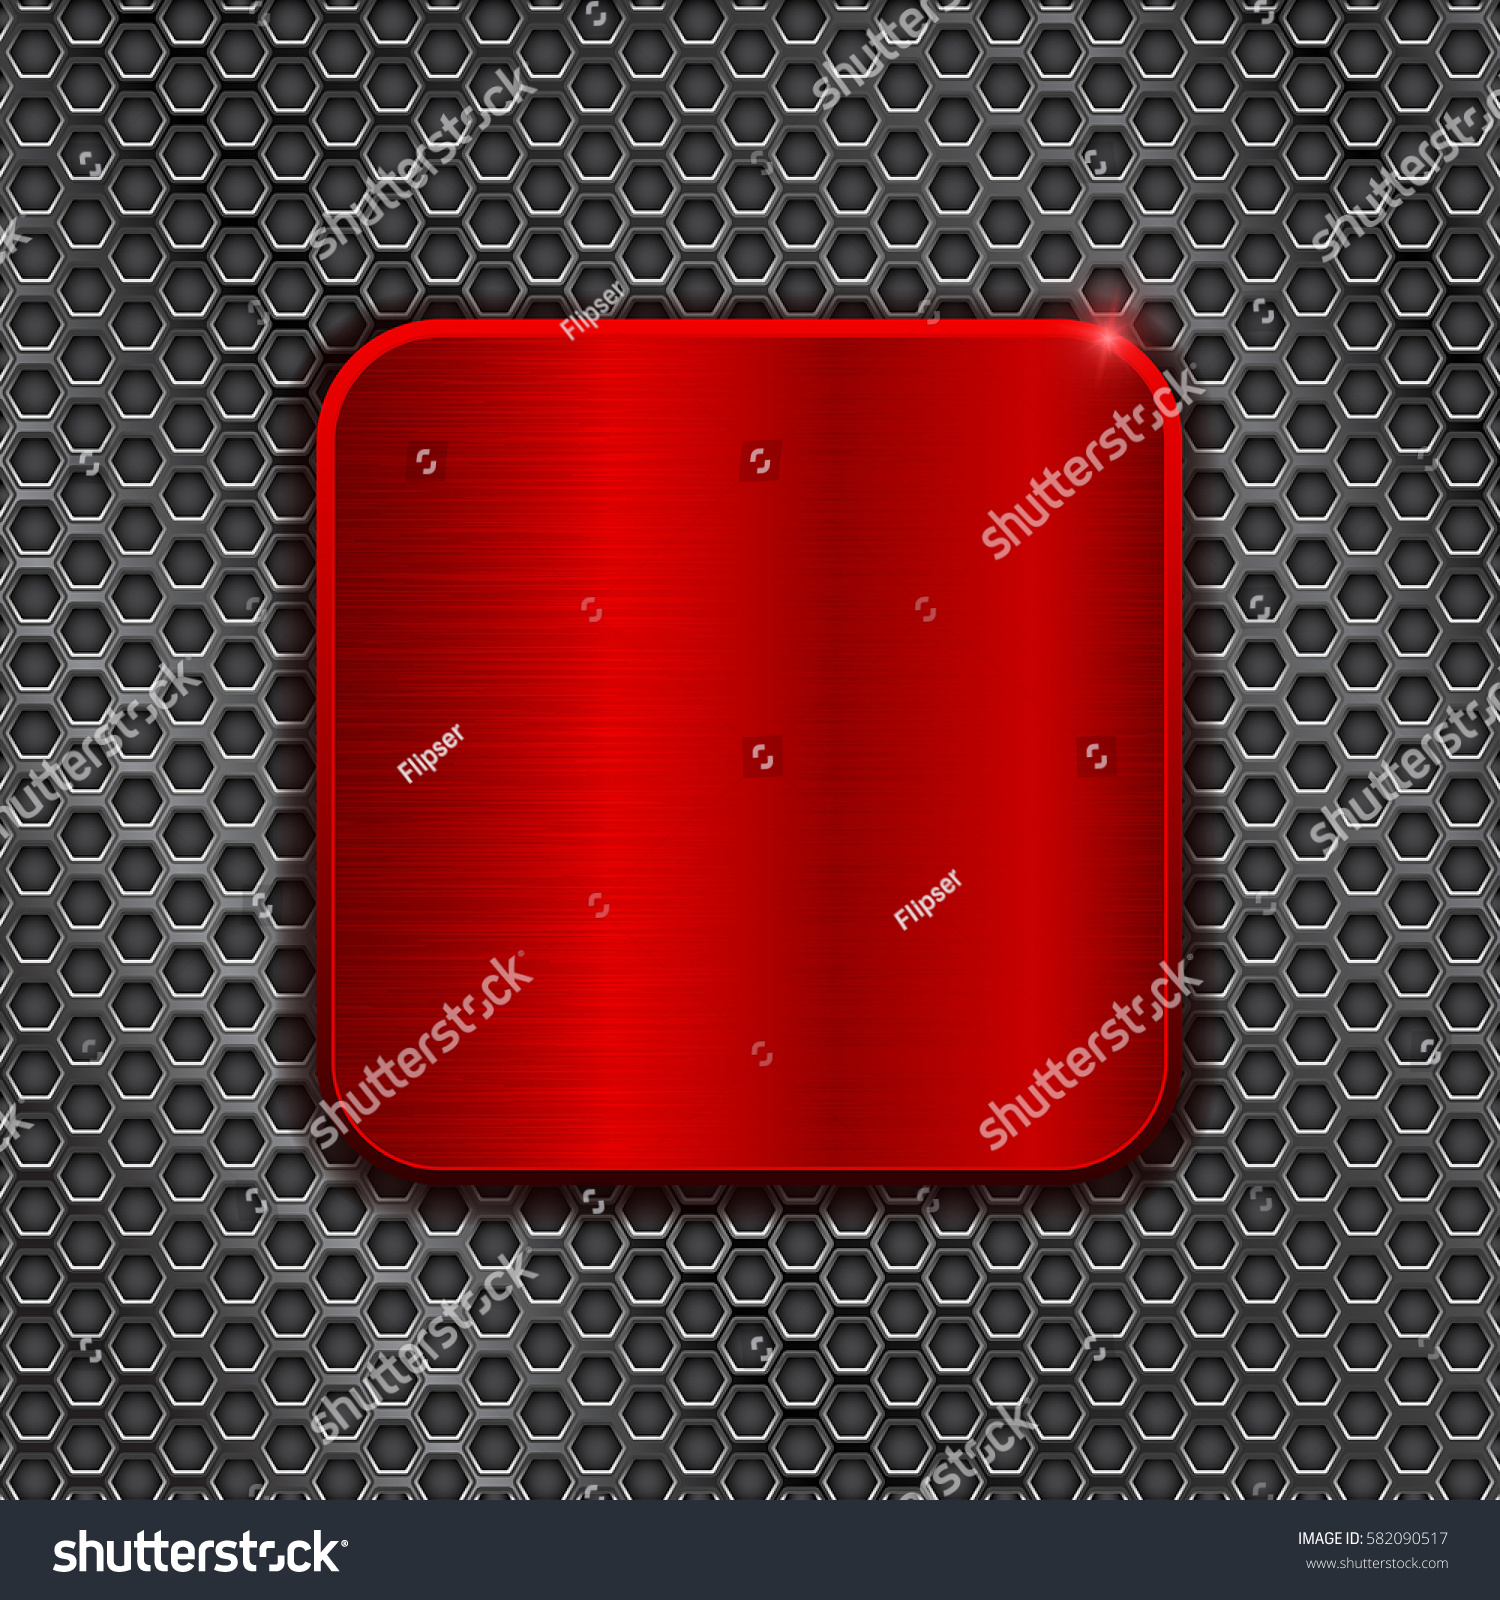 Red Square Plate On Metal Perforated Stock Vector 582090517 - Shutterstock & Red Square Plate On Metal Perforated Stock Vector 582090517 ...